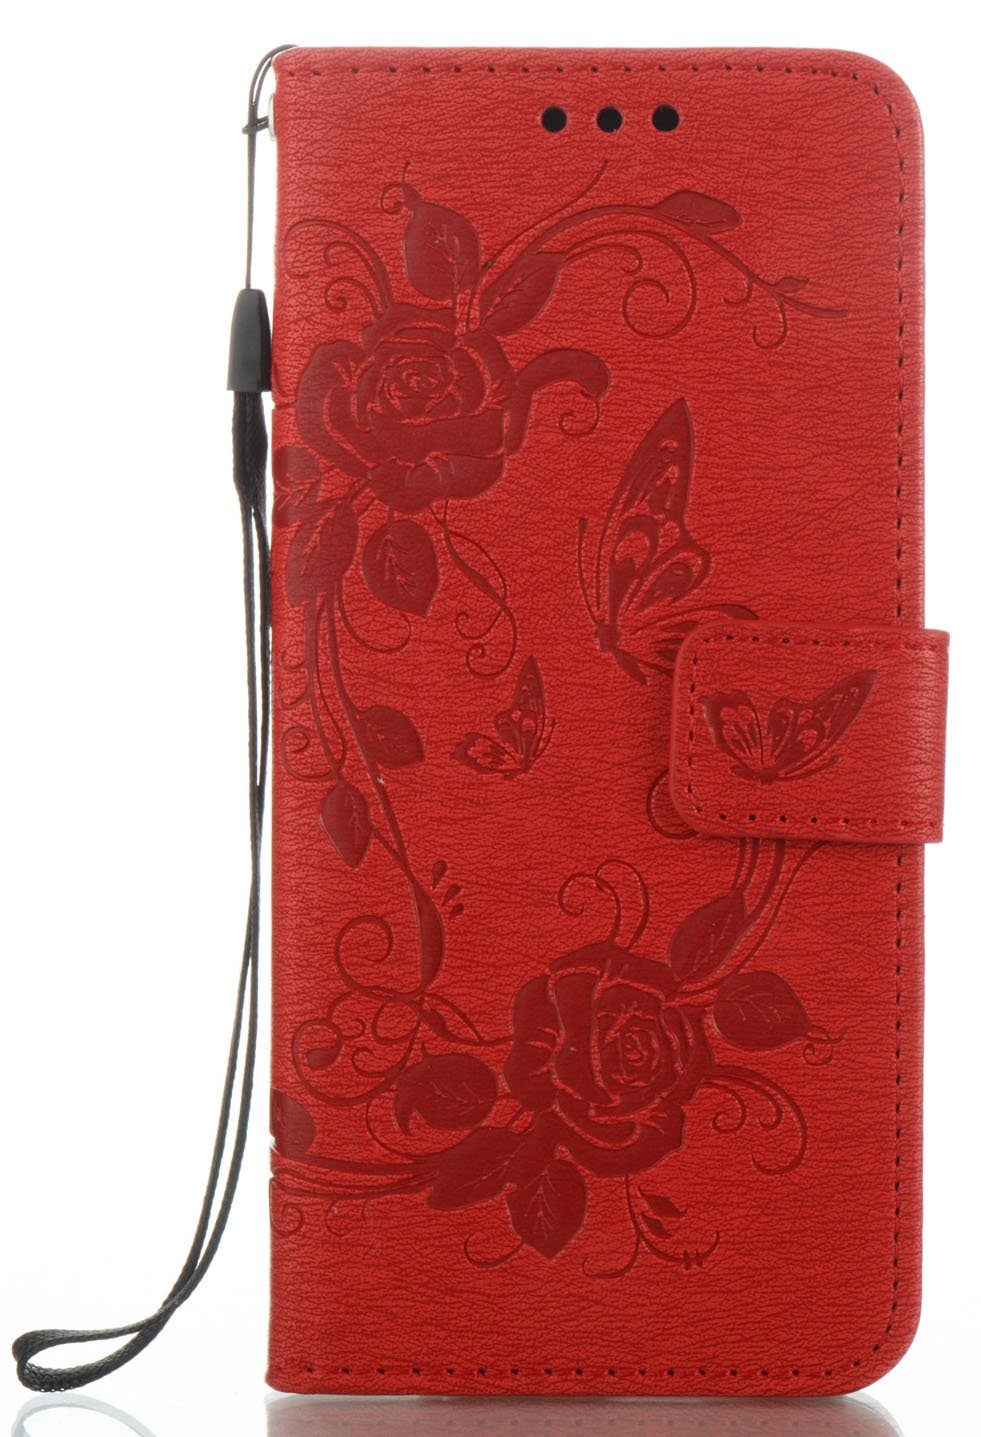 Galaxy S8 Case Cover Aiyze Luxury Wallet Style Magnetic Closure Red PU Leather Emboss Fashion Butterfly Flower Pattern with Stylus Hand Wrist Strap Stand Feature Built-in Card Slot Flip Bookcase